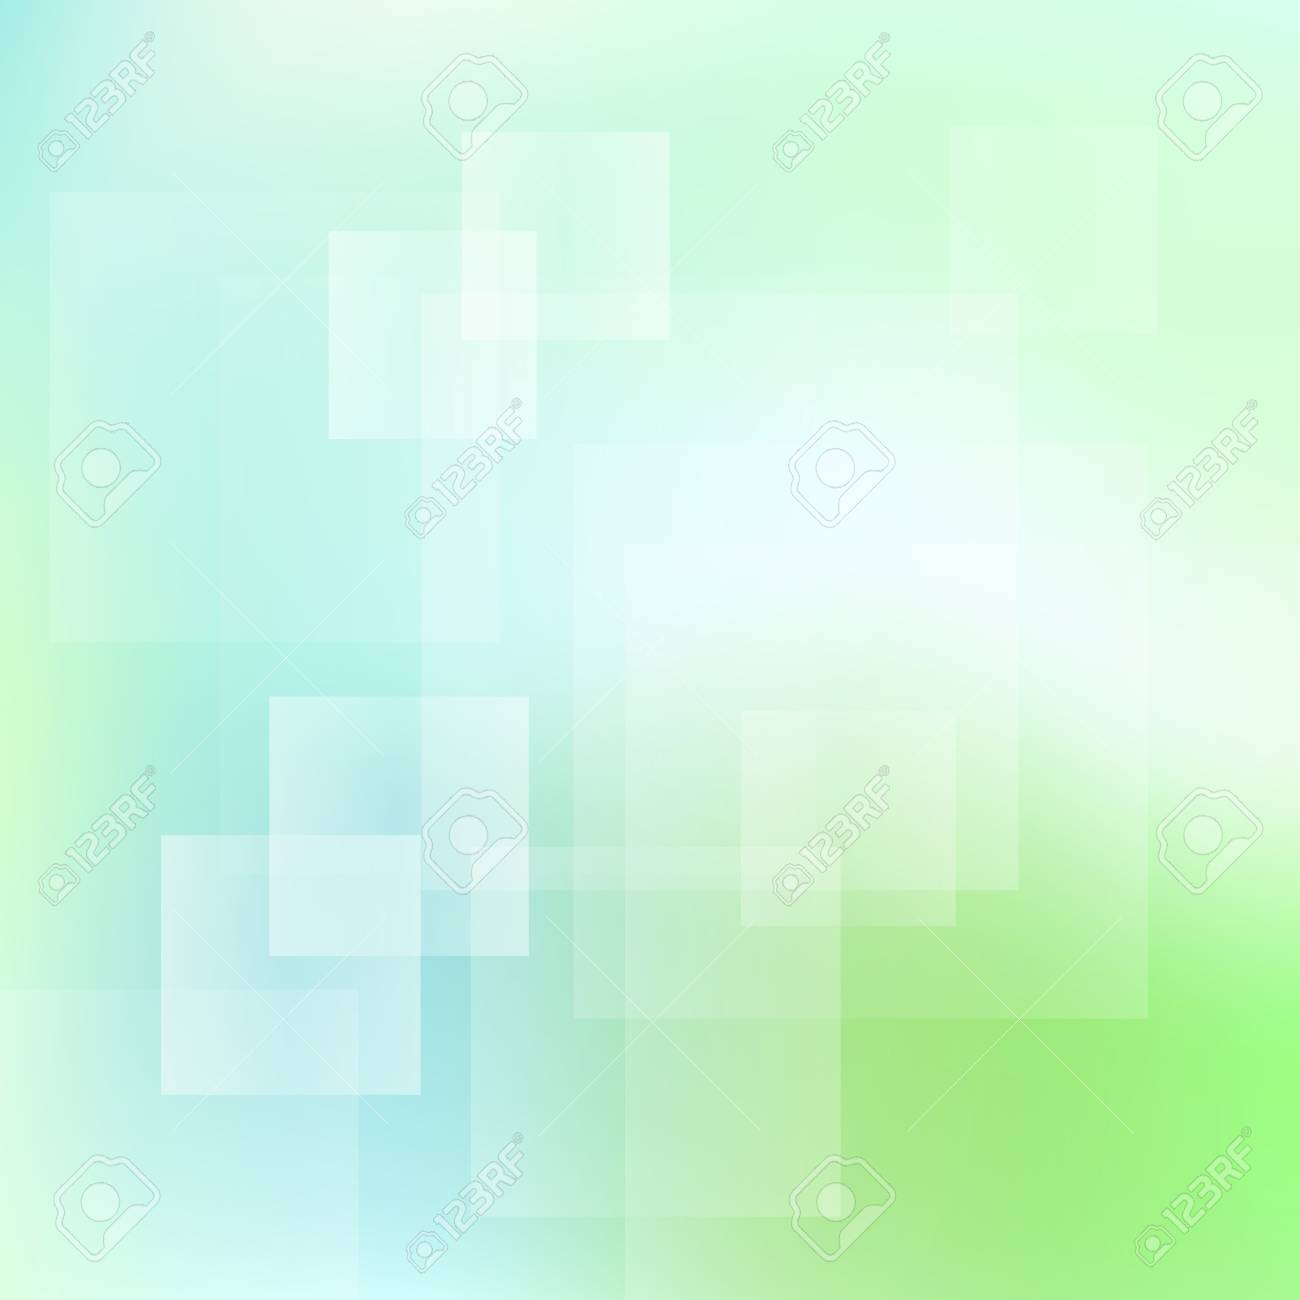 Green and blue abstract light vector background for card Stock Vector - 17407995